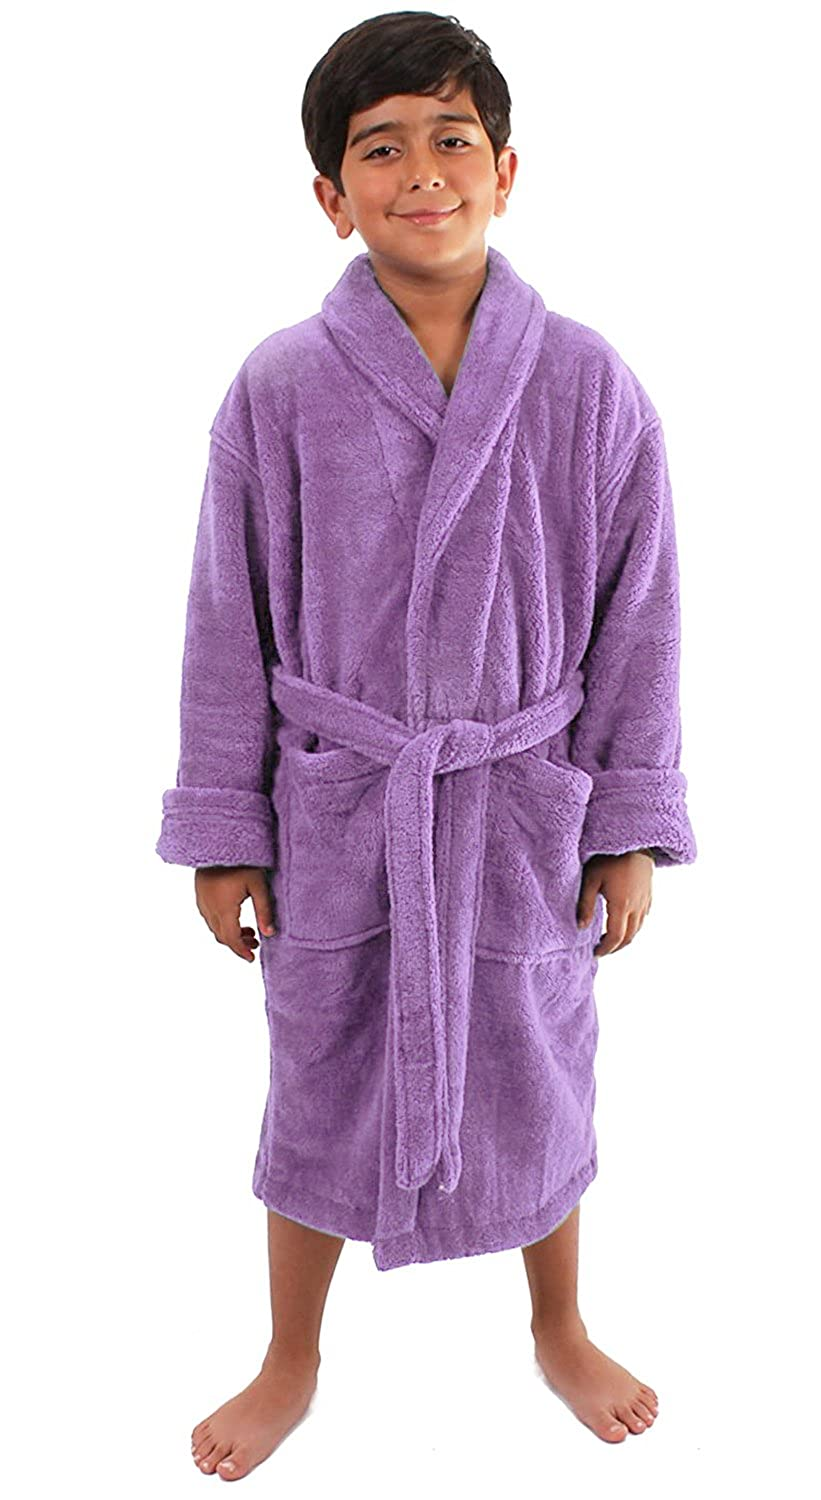 Turkuoise Boys Ultra Soft Plush Bathrobe Made in Turkey